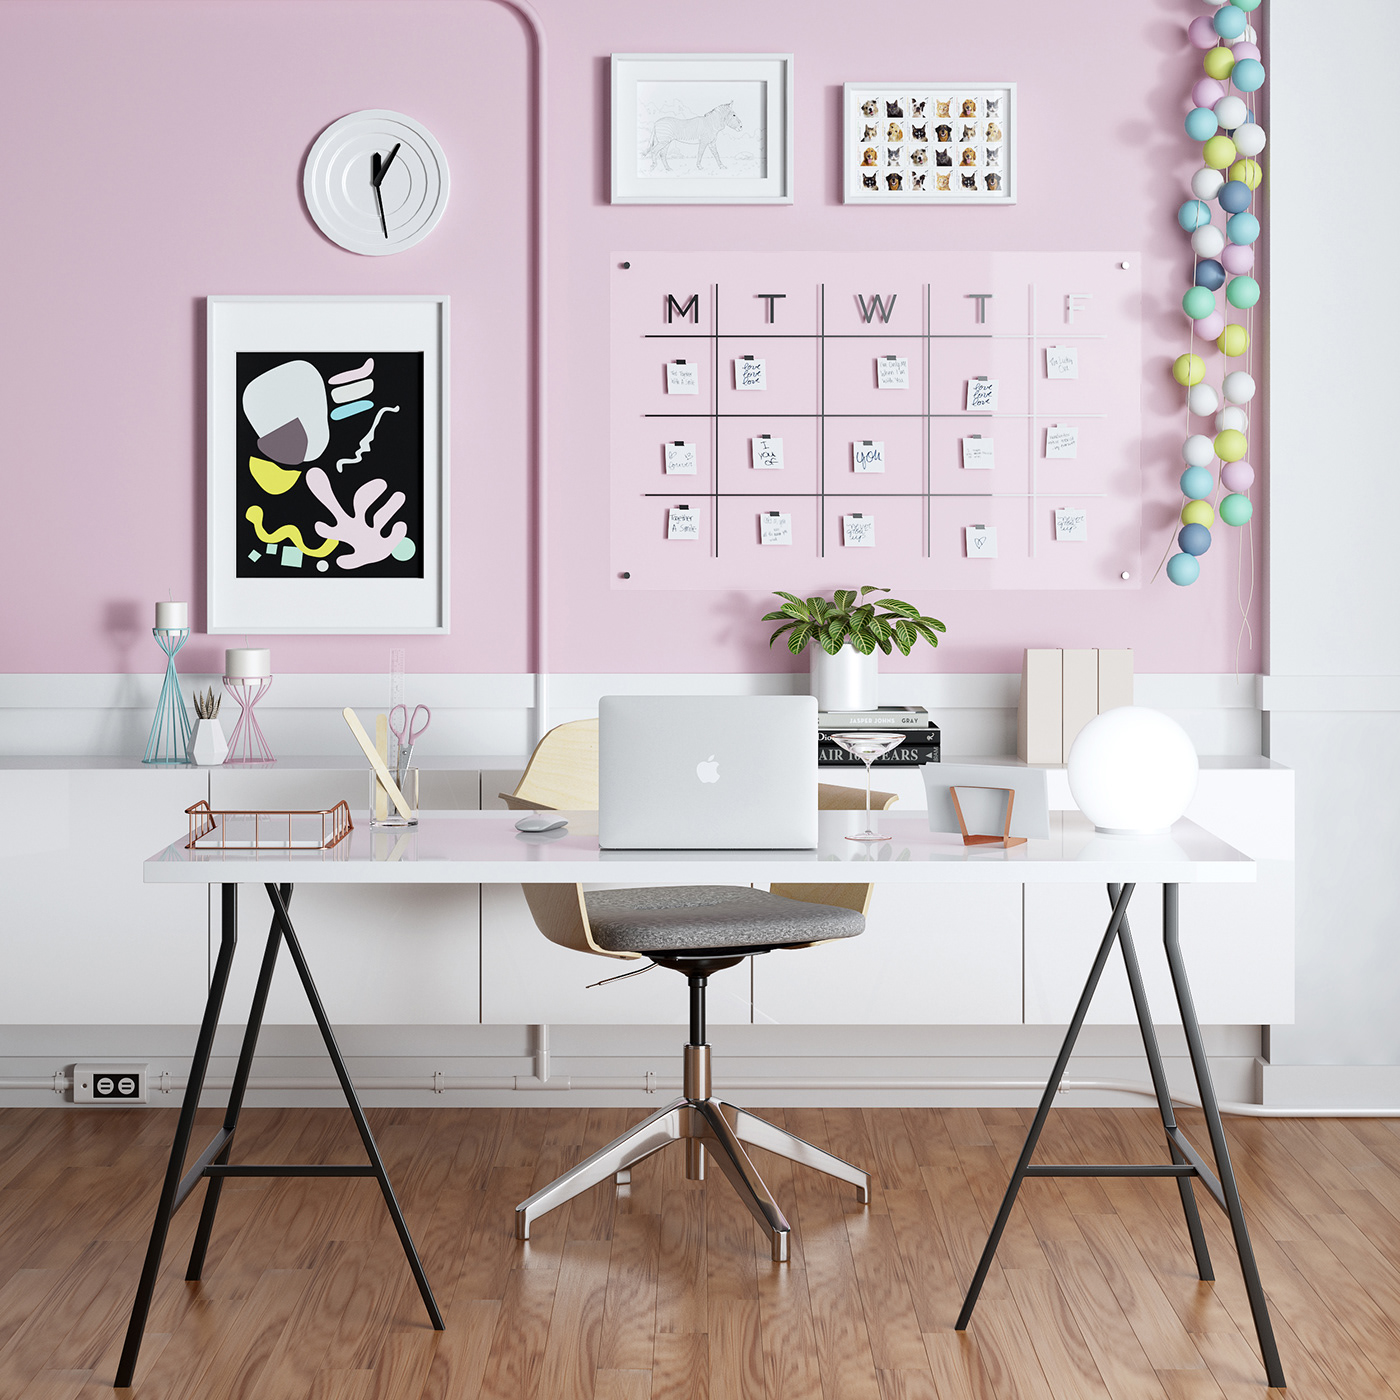 3dmodel ikea home offiice decoration pink girly tableandchair Interior design